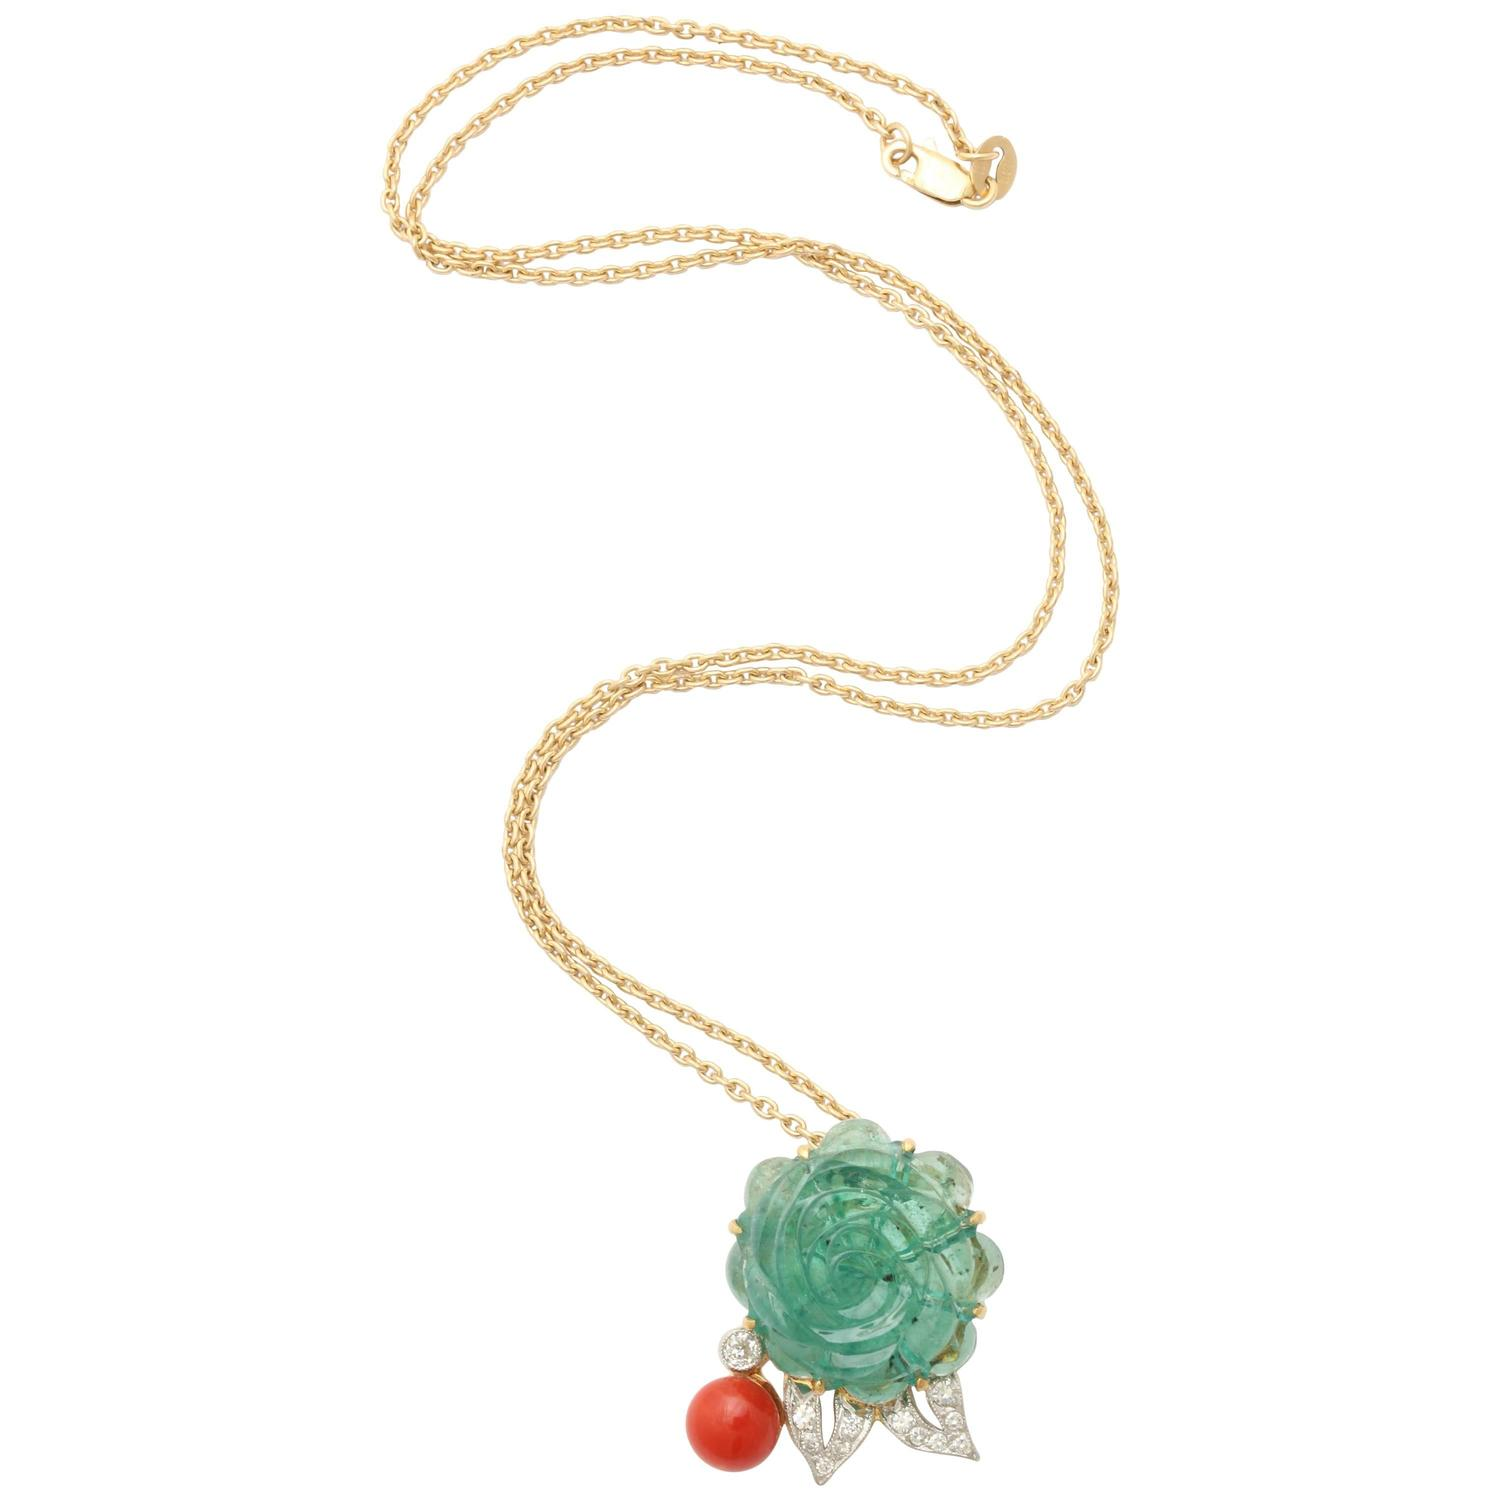 Carved Emerald Rose with Coral Pendant Necklace For Sale at 1stdibs